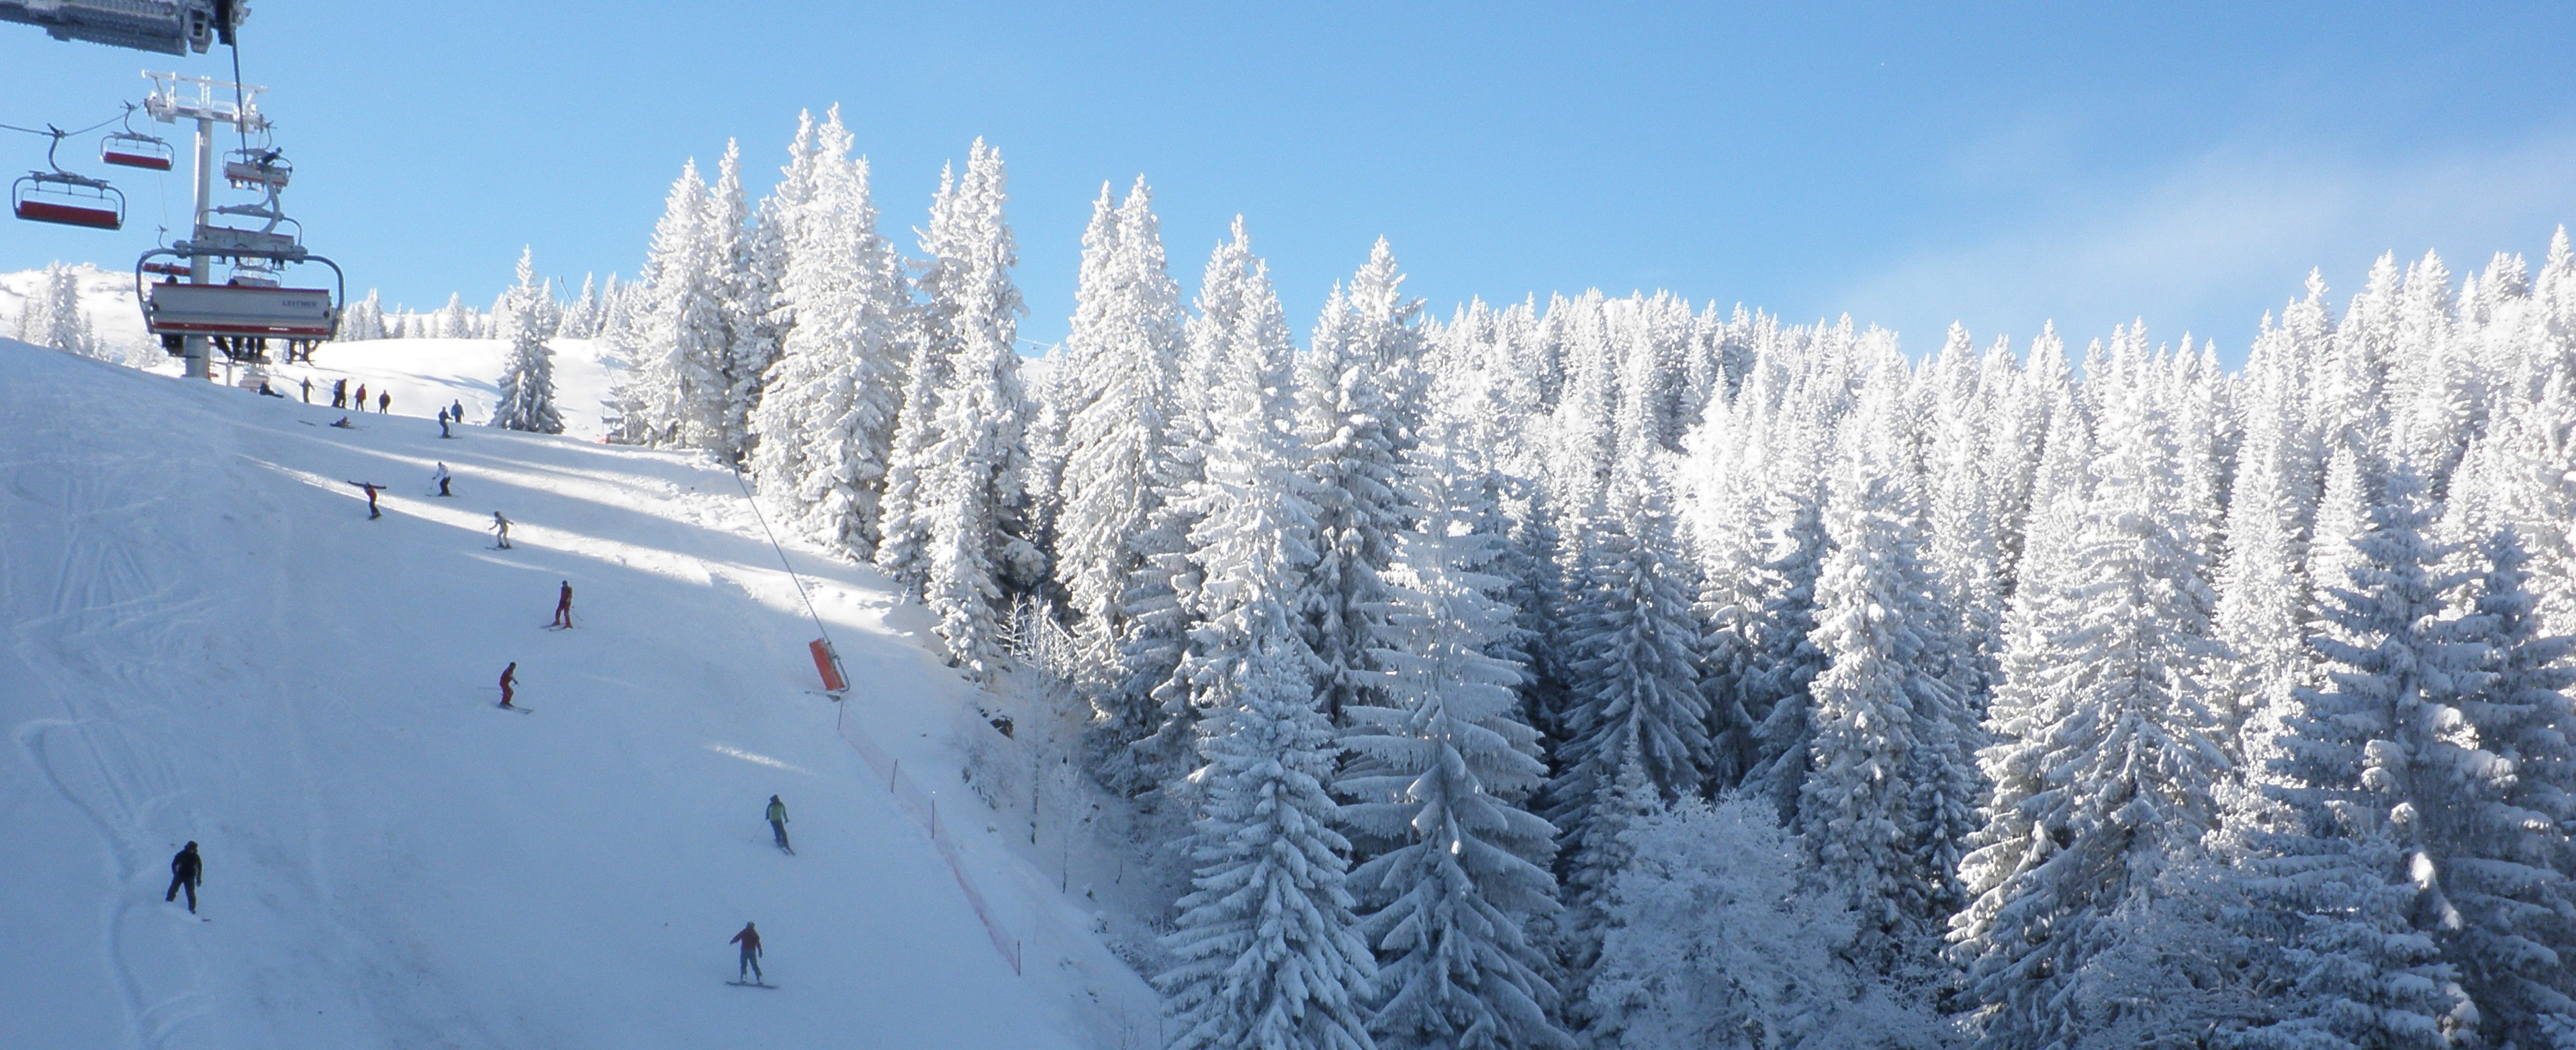 Jahorina among the Top World Ski Destinations